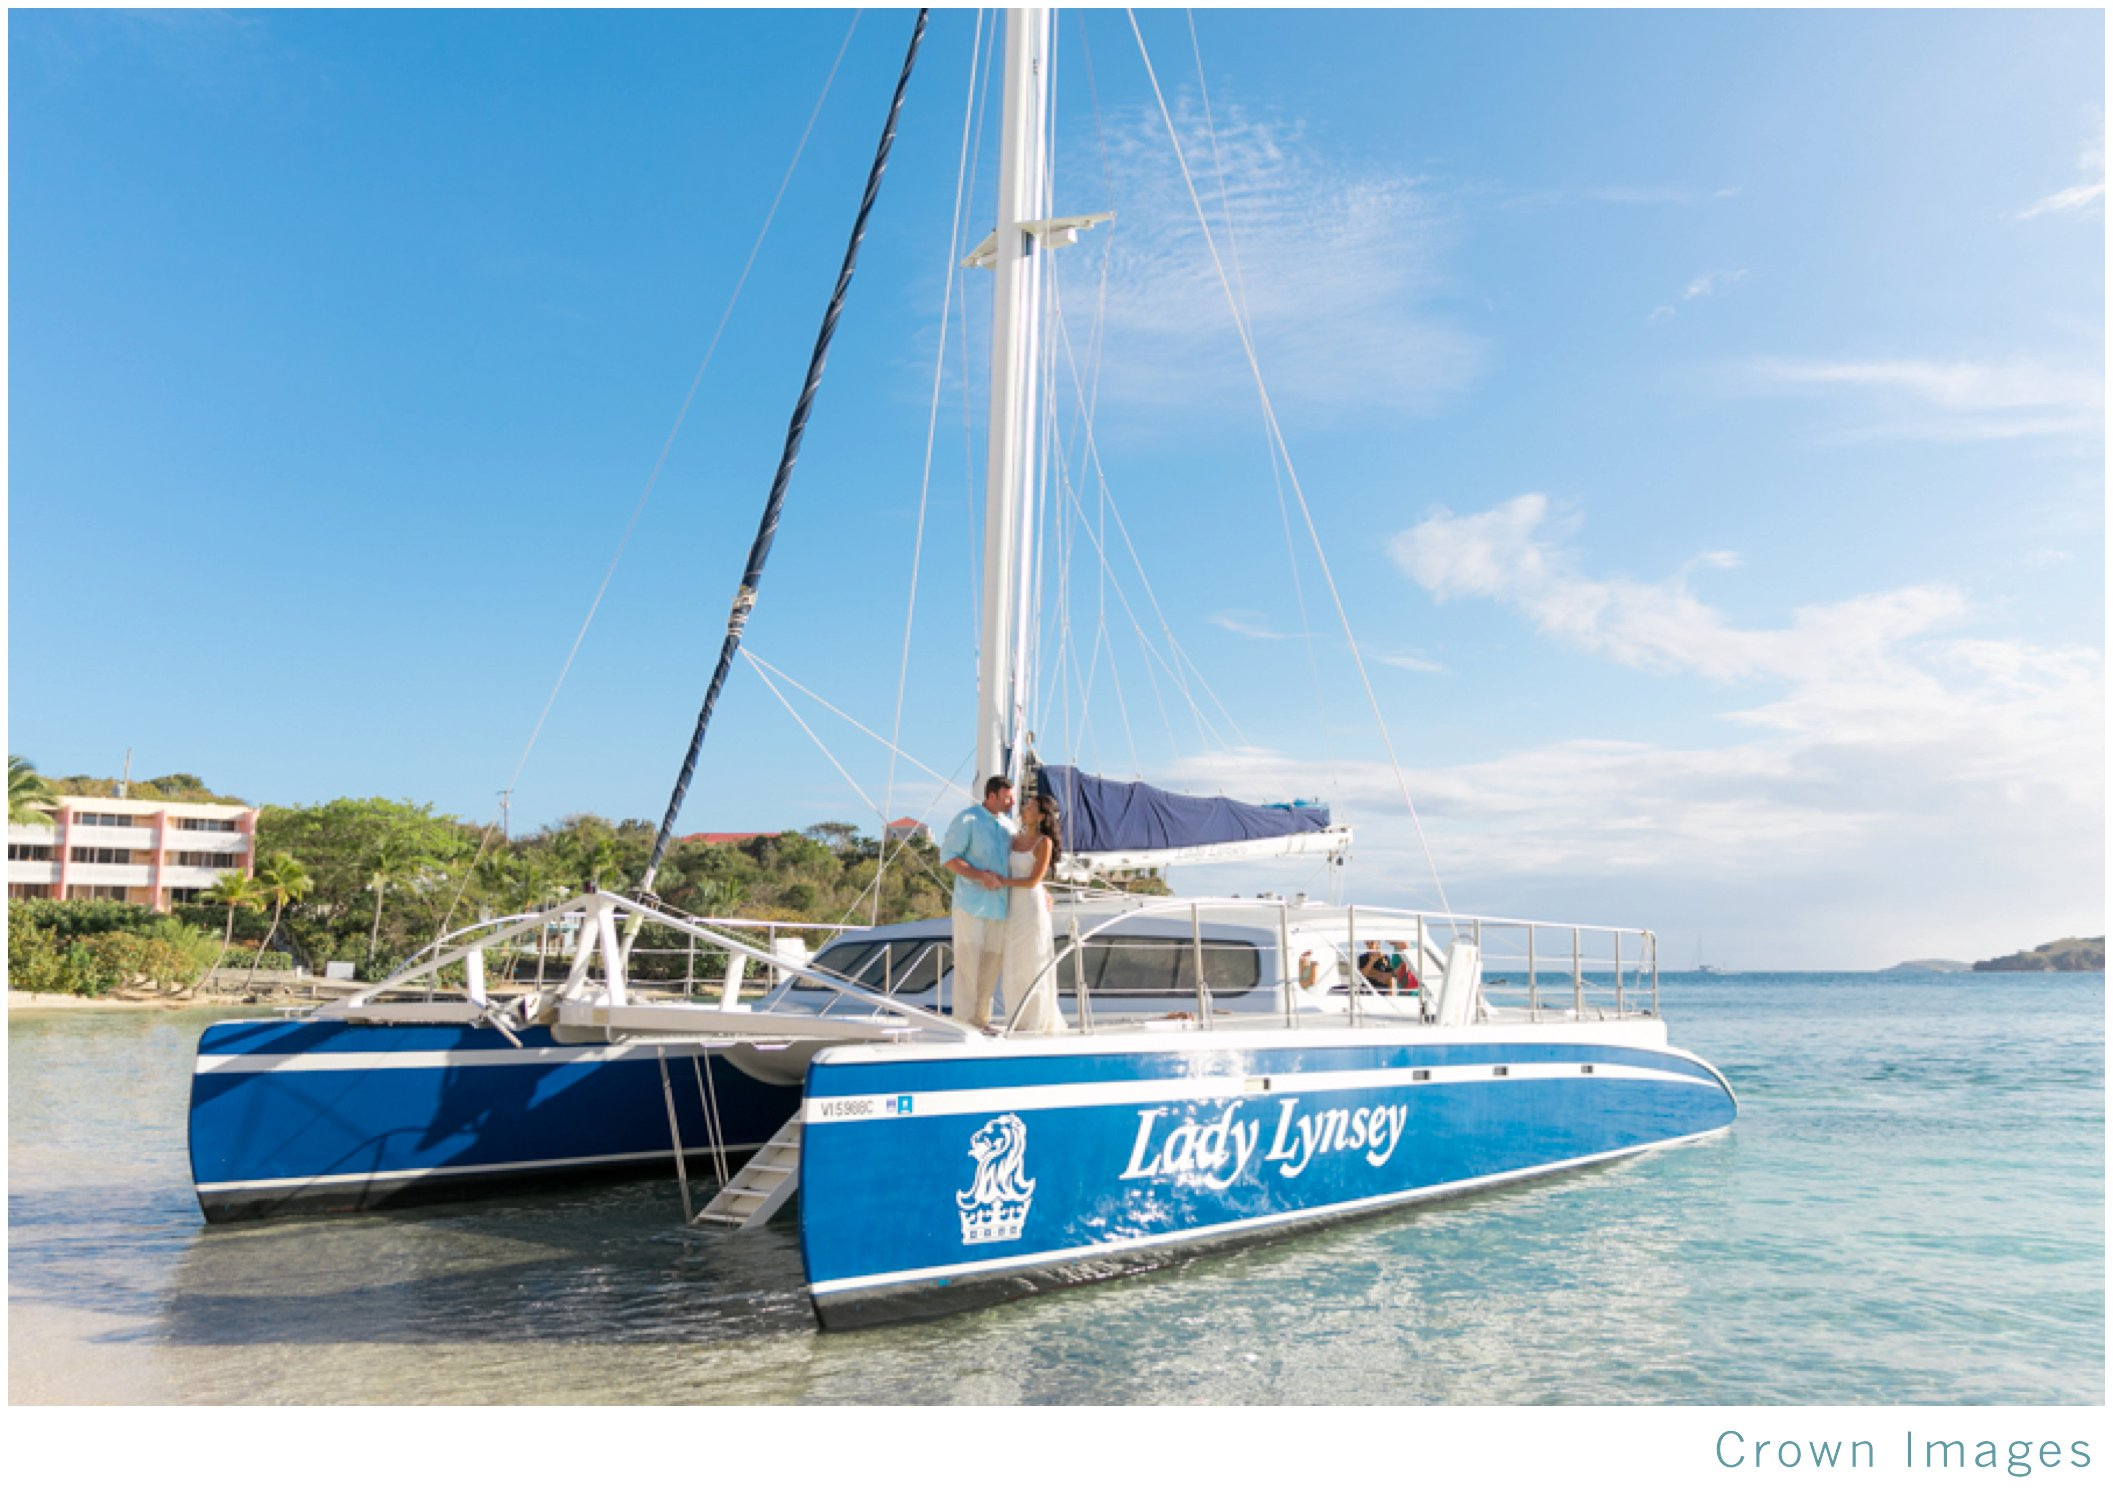 lady lynsey on st thomas is perfect for a wedding group